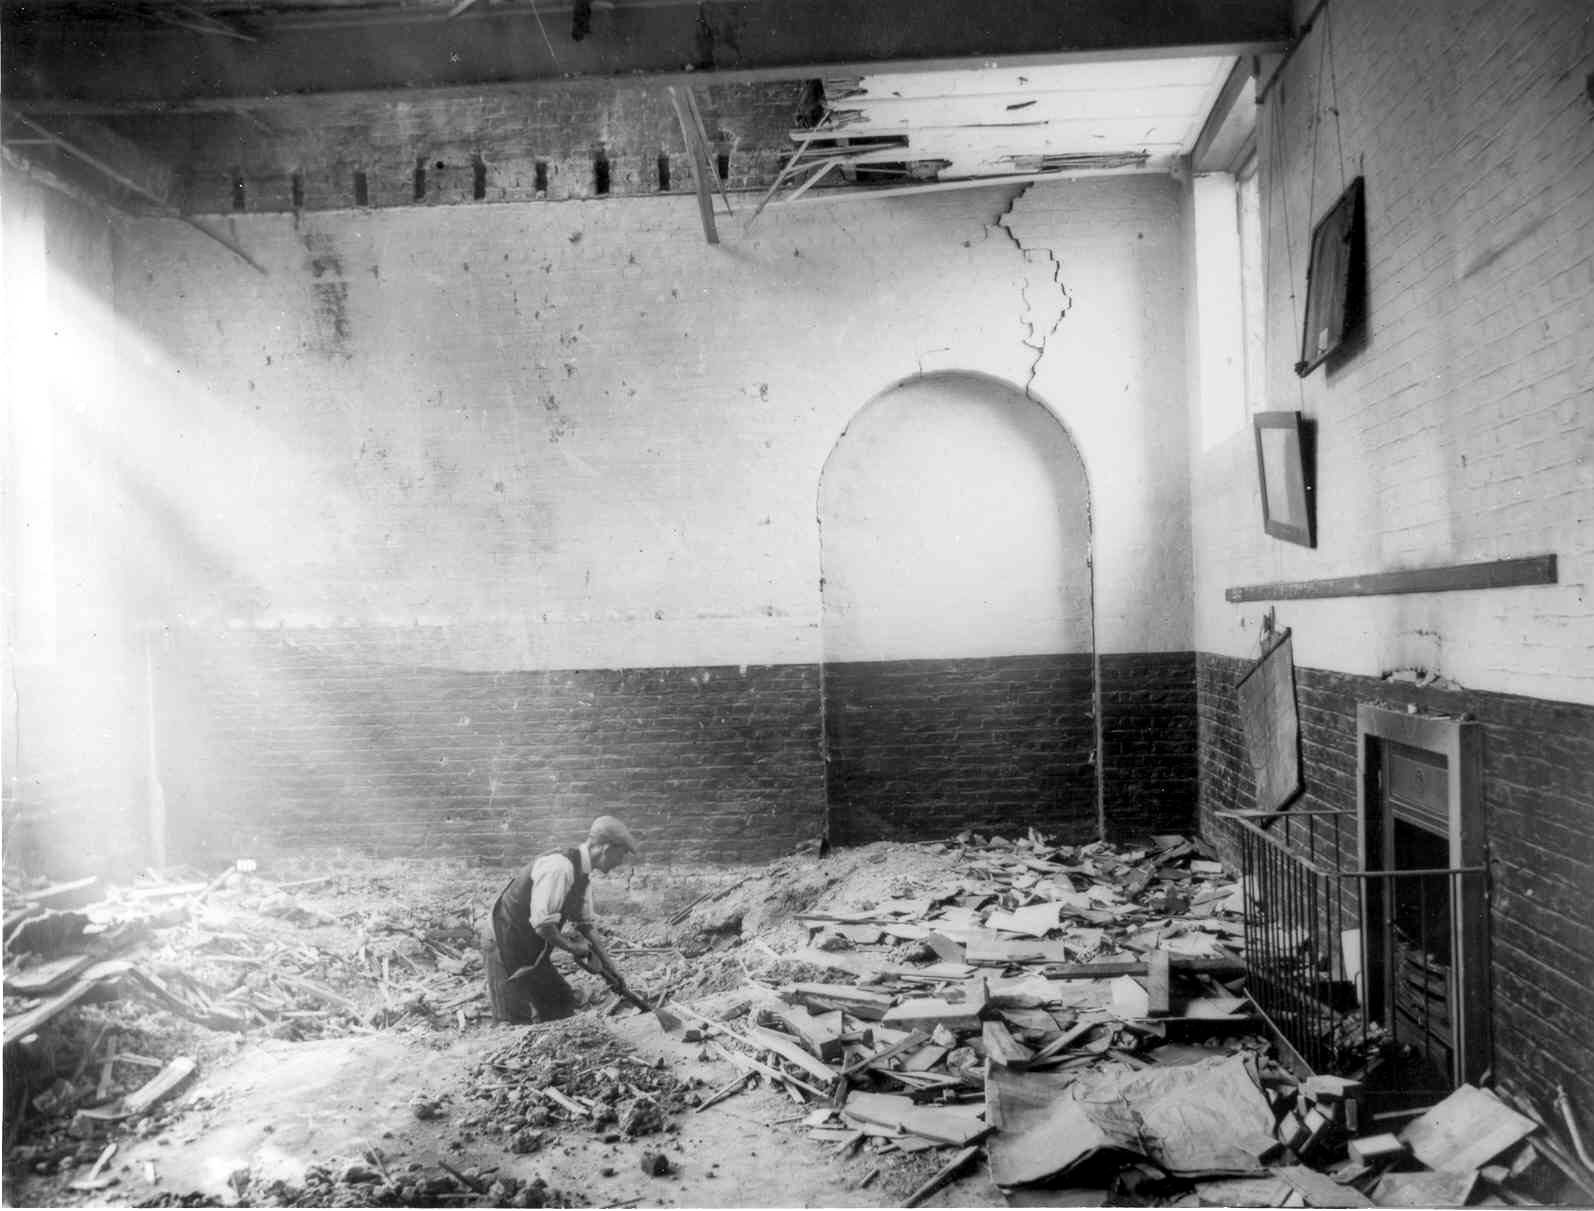 Cleaning the debris in a classroom of Upper North Street school after the raid on the 13 Jun 1917